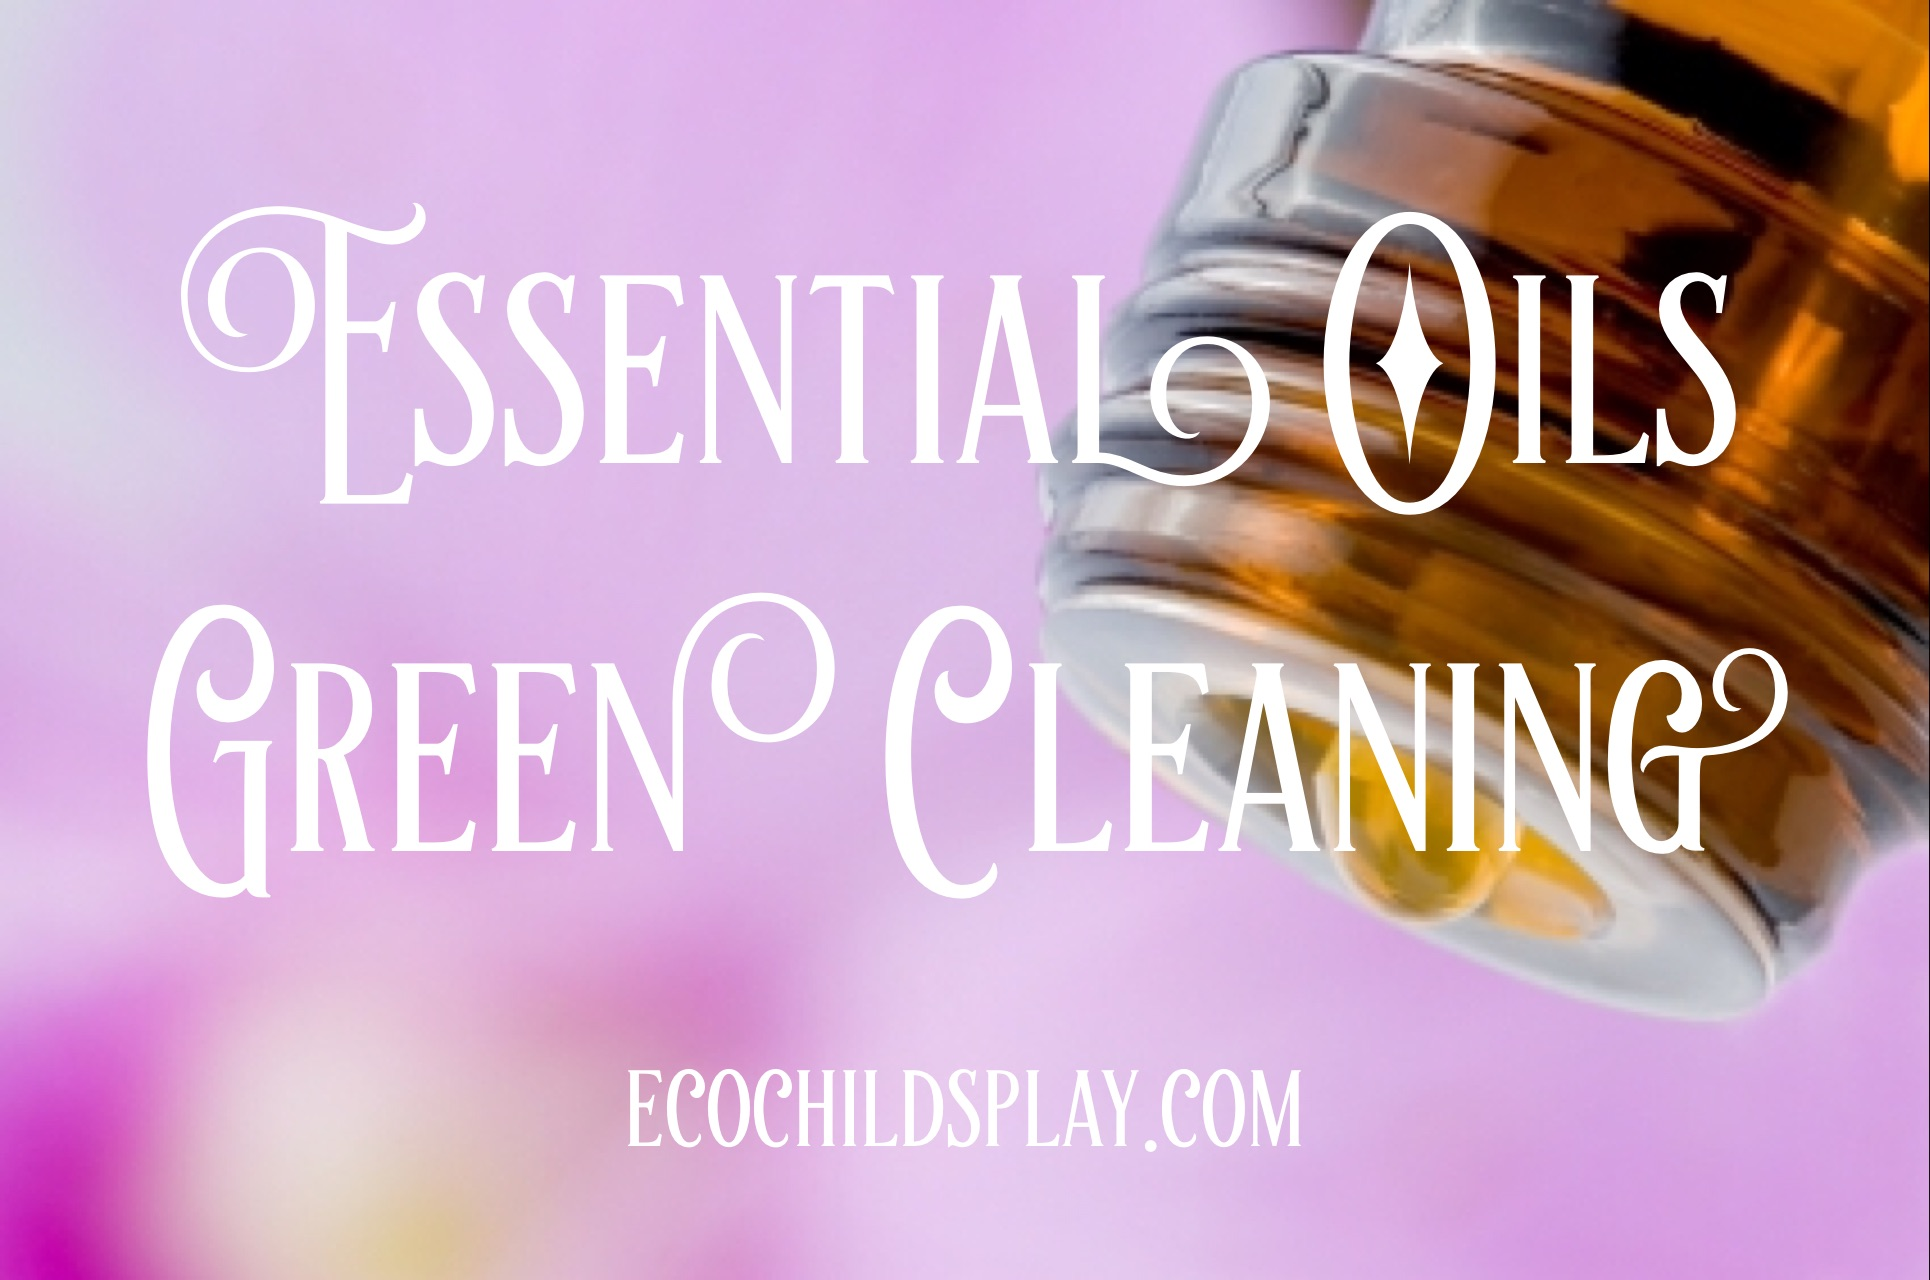 essential oils green cleaning